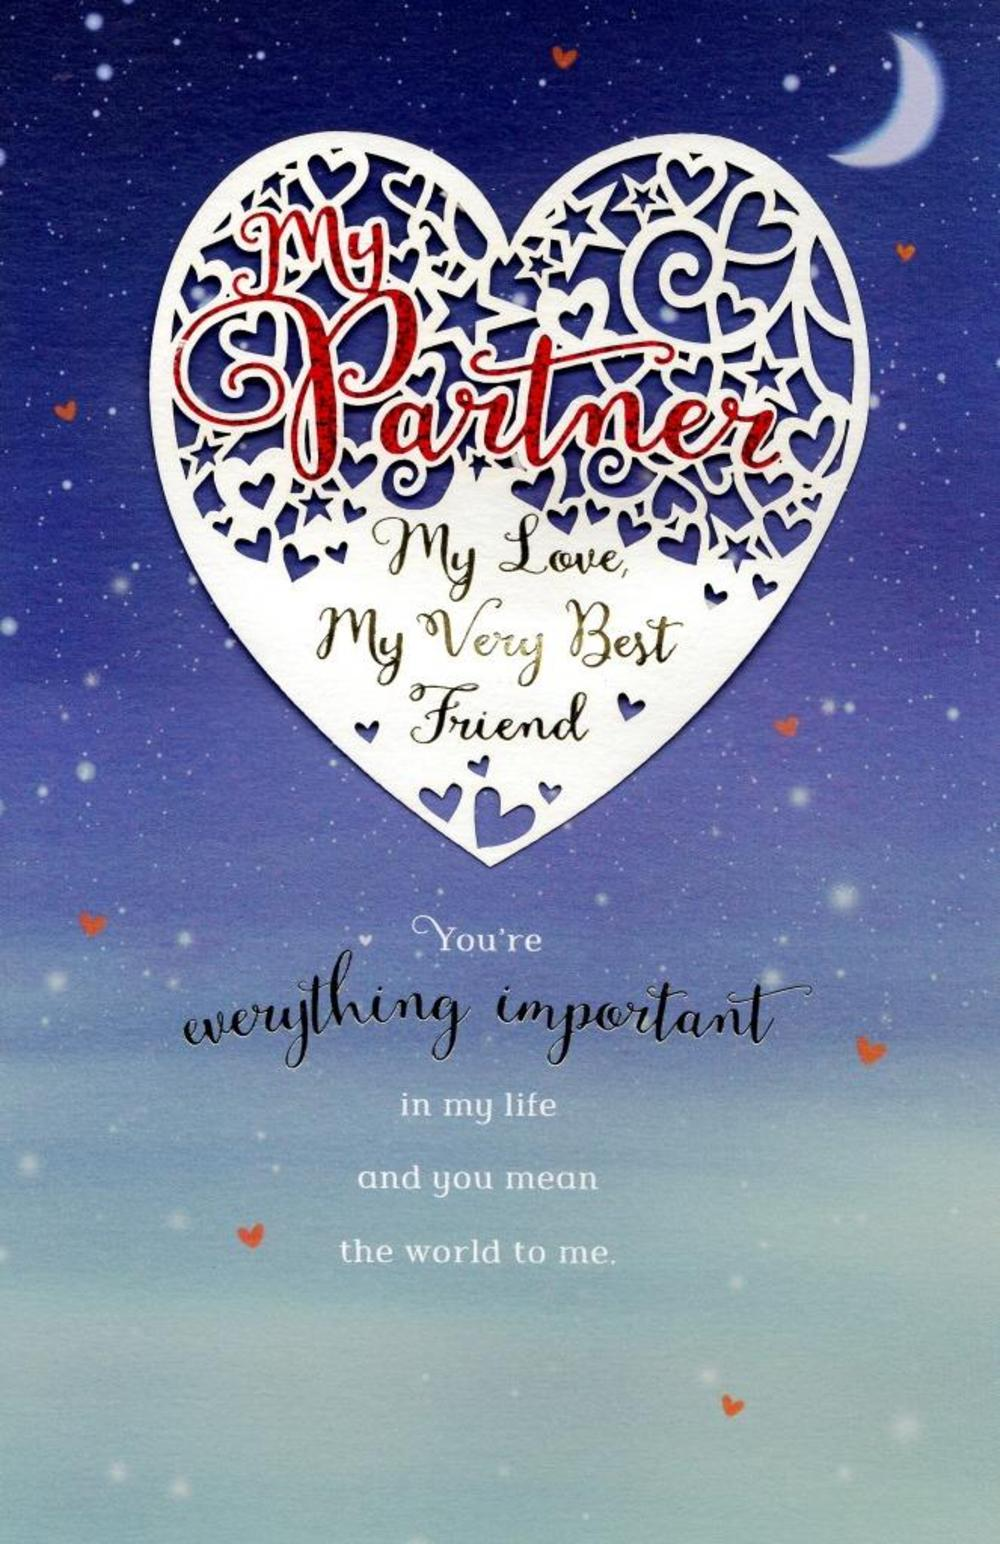 My Partner My Love Embelished Valentine's Day Greeting Card